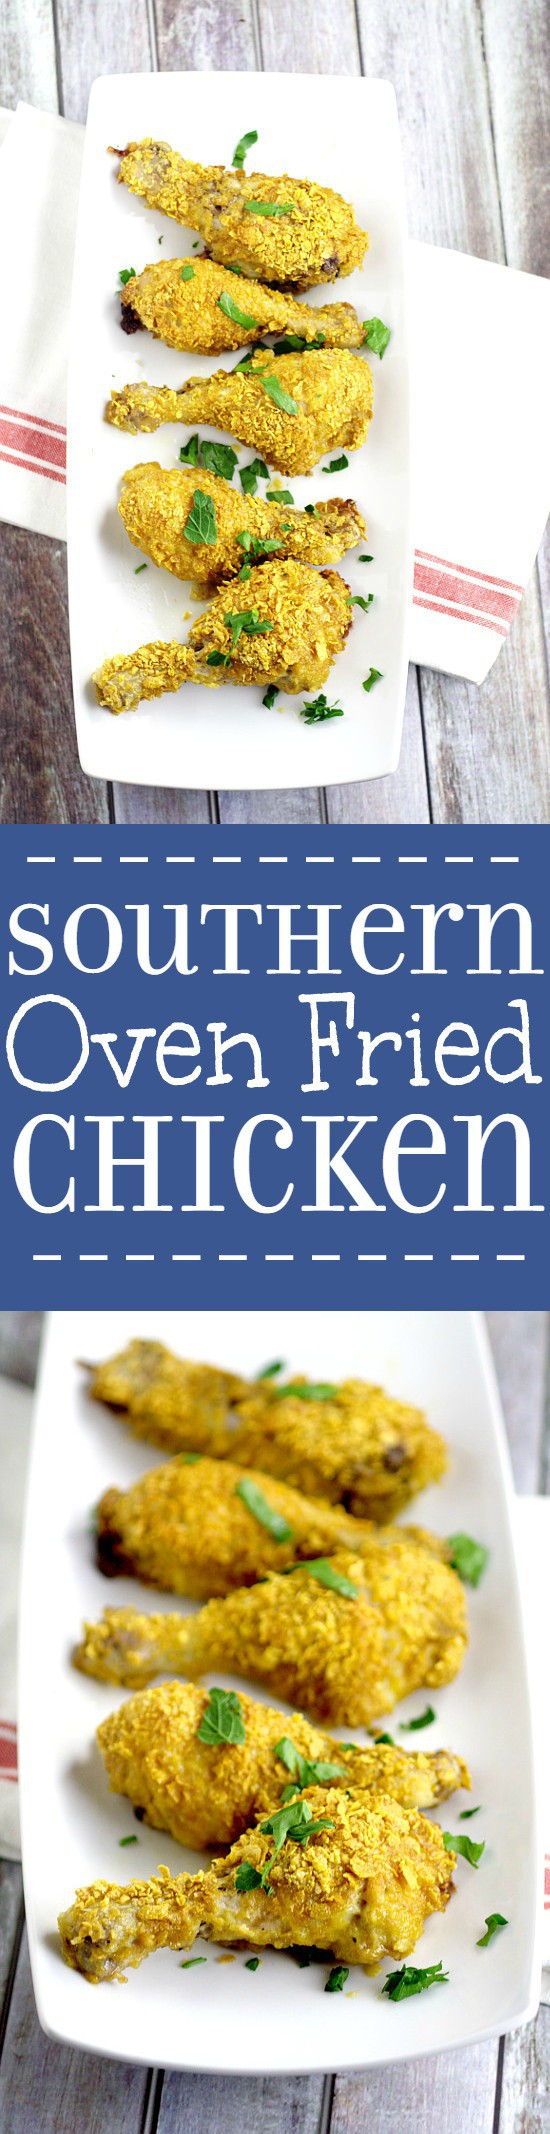 Southern Oven Fried Chicken  Southern Oven Fried Chicken